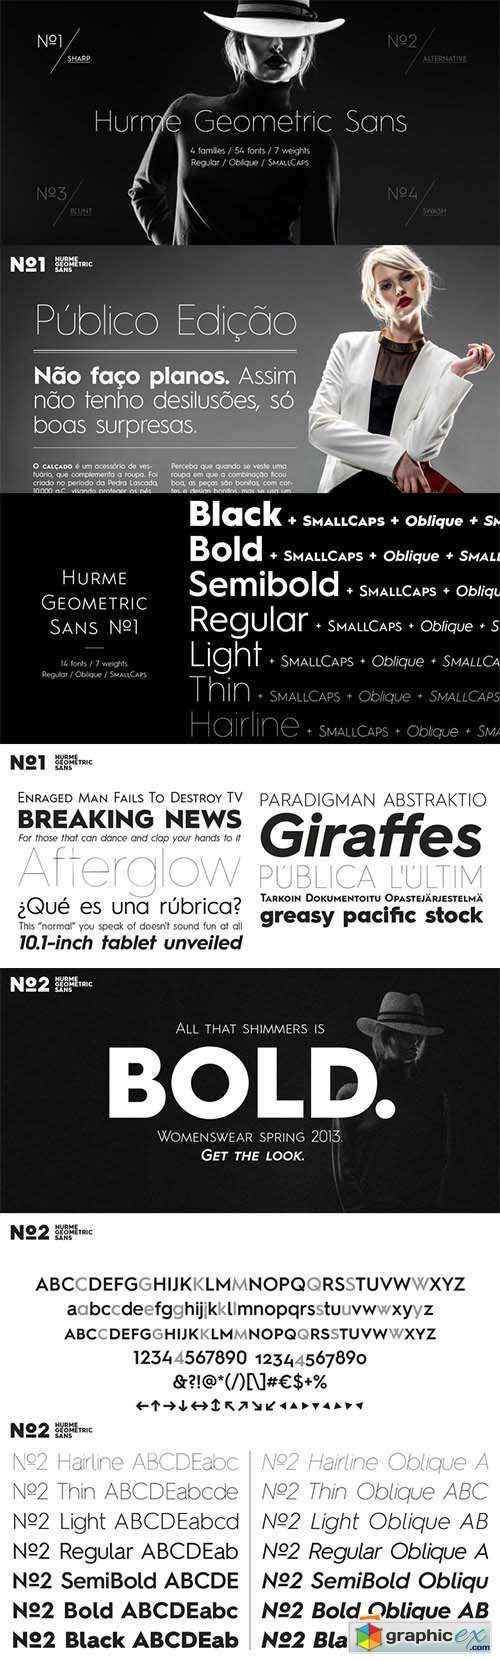 Hurme Geometric Sans No.Font Family - 56 Fonts $2744